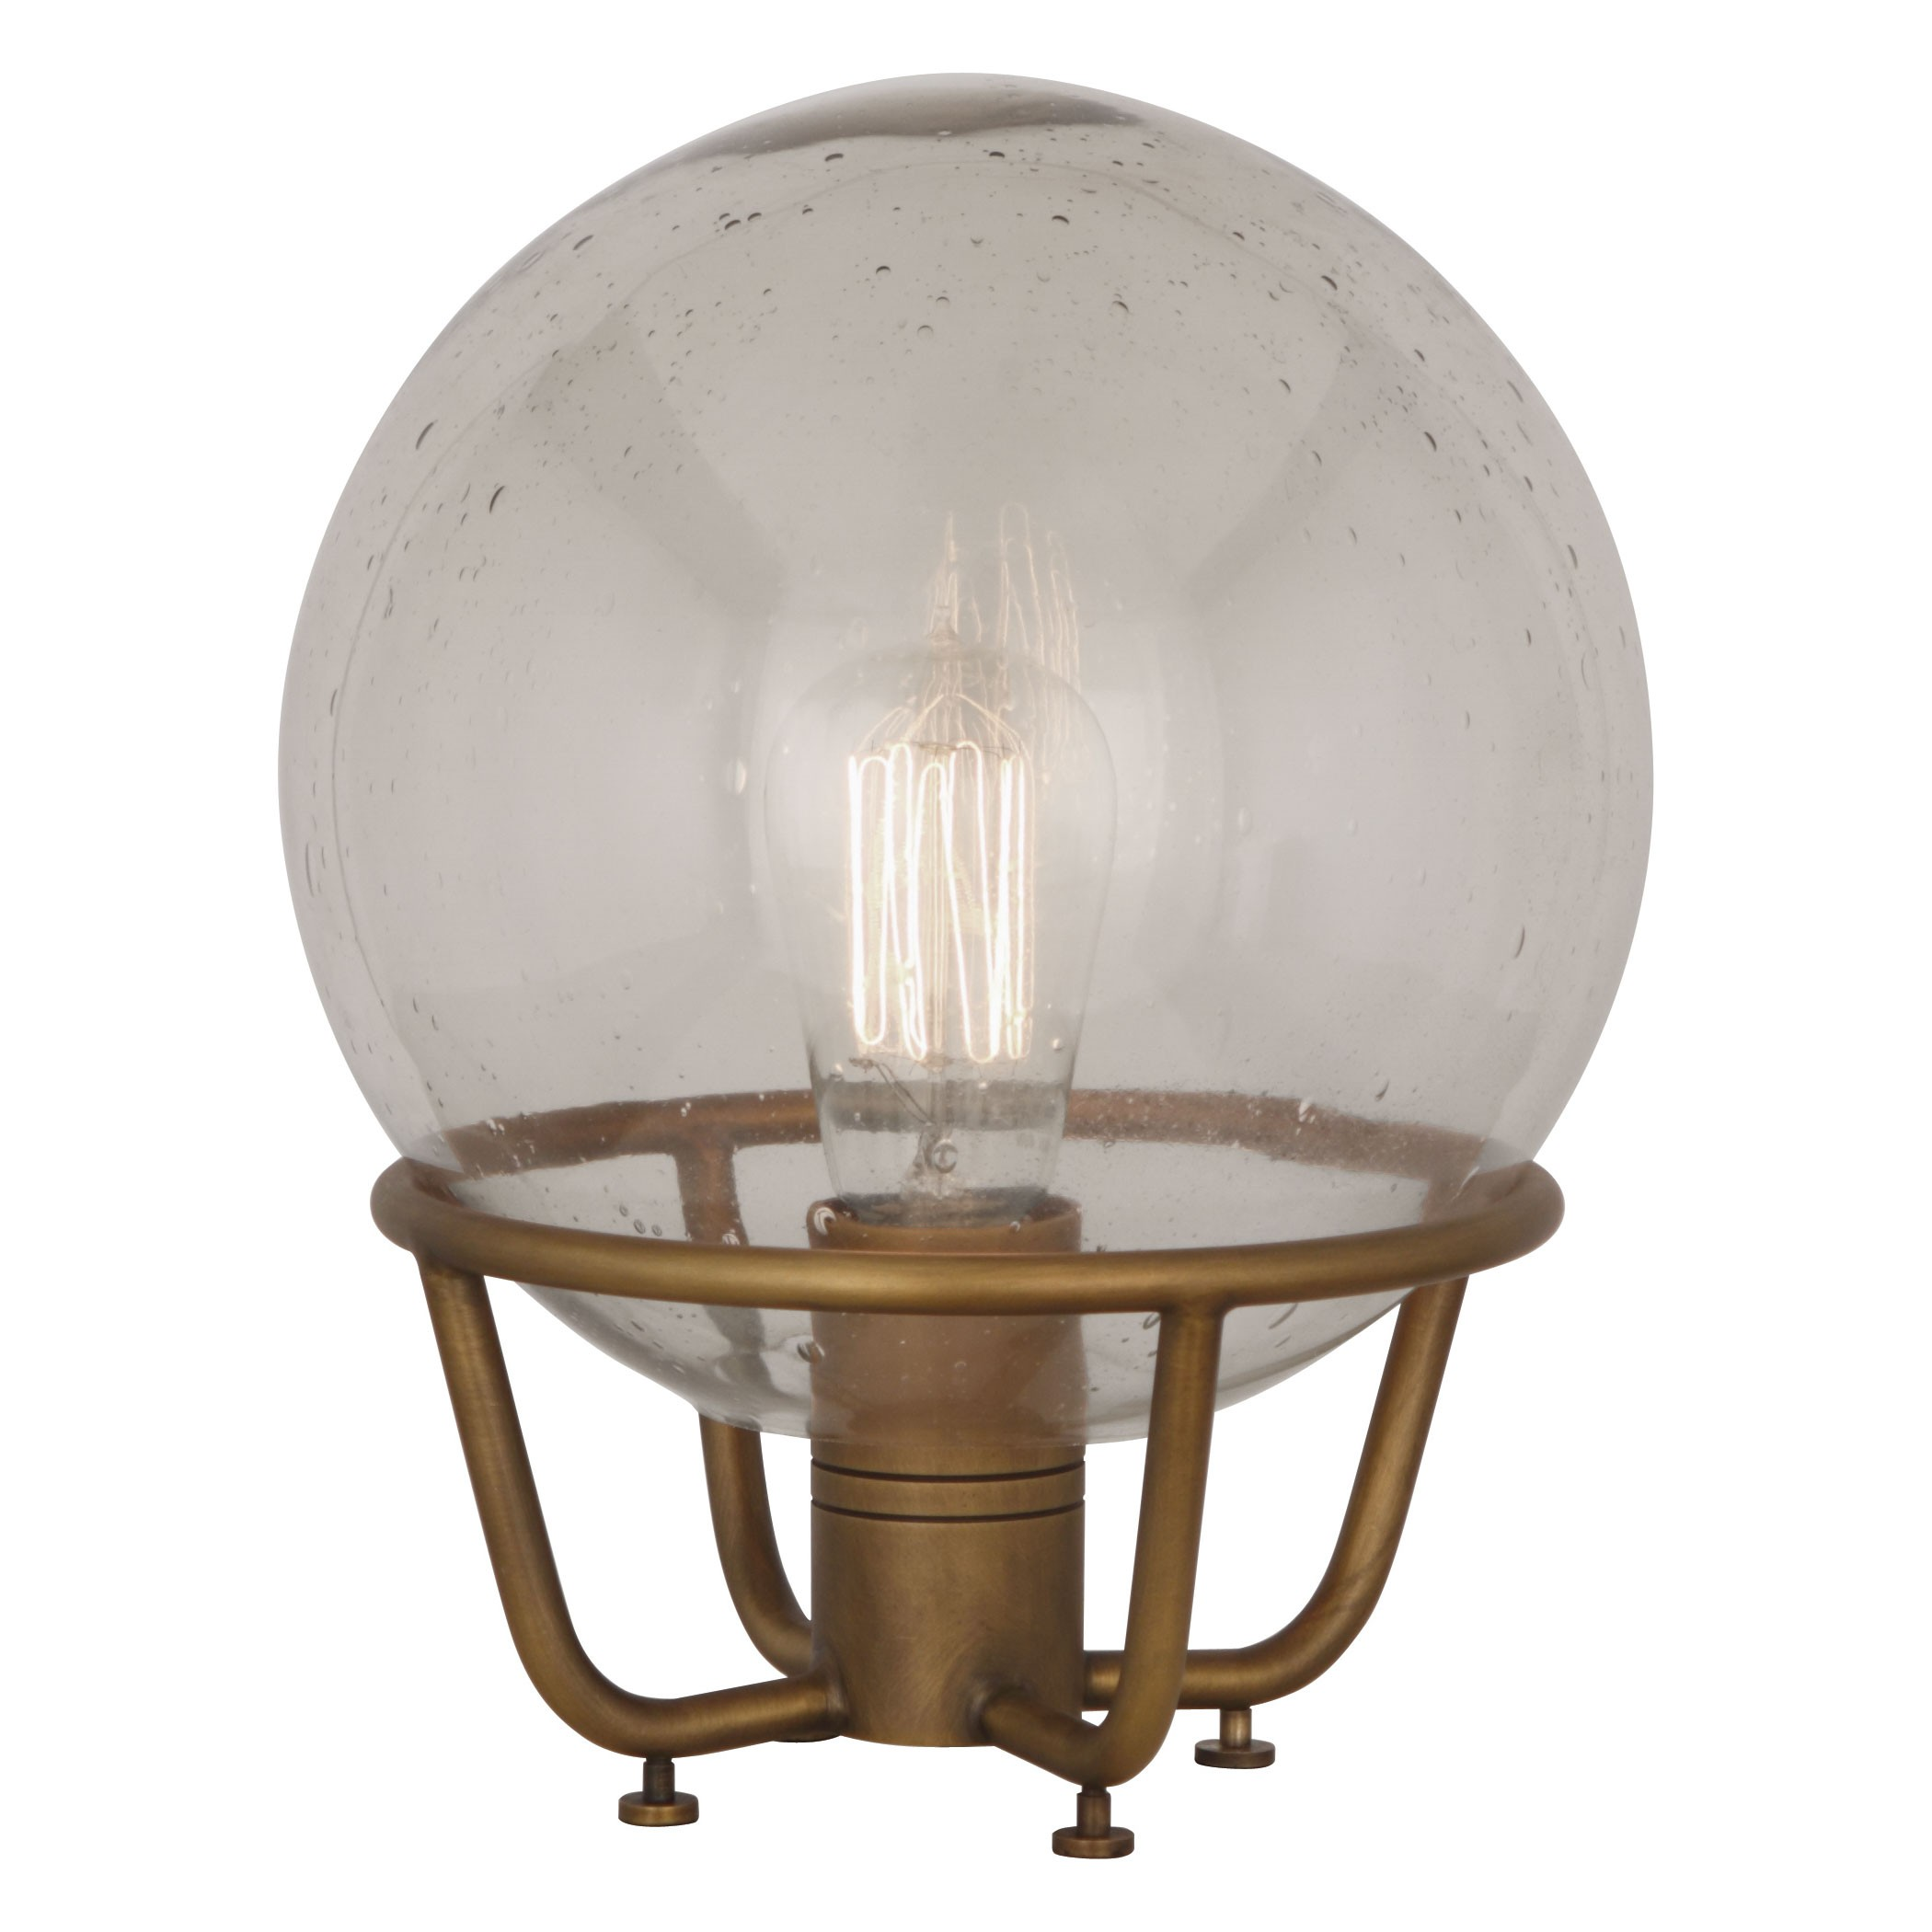 mini accent lamps led lights tiffany submersible table lamp home full size tennis robot wicker garden and chairs west elm chair glass replacement wrought iron frame distressed